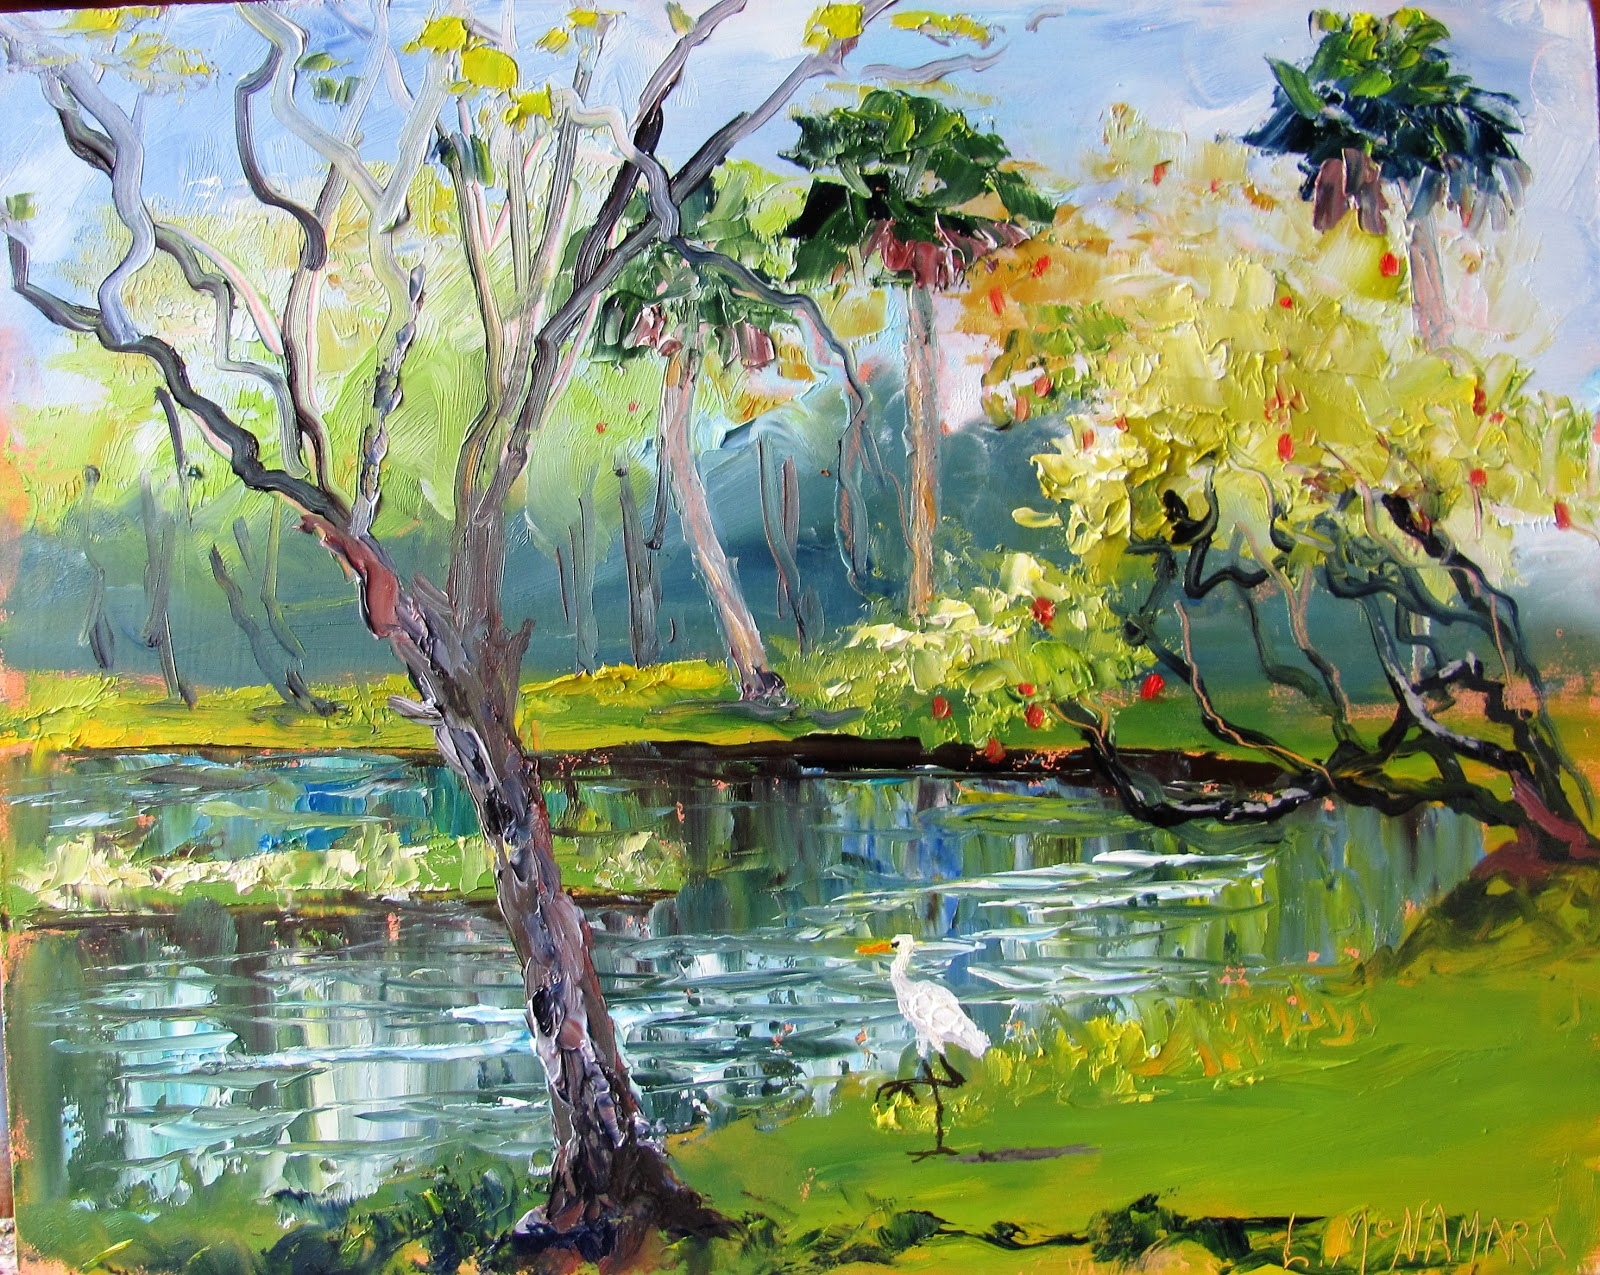 Lori S Stormy Art And Daily Paintings 1647 American Egret At White City Park Plein Air